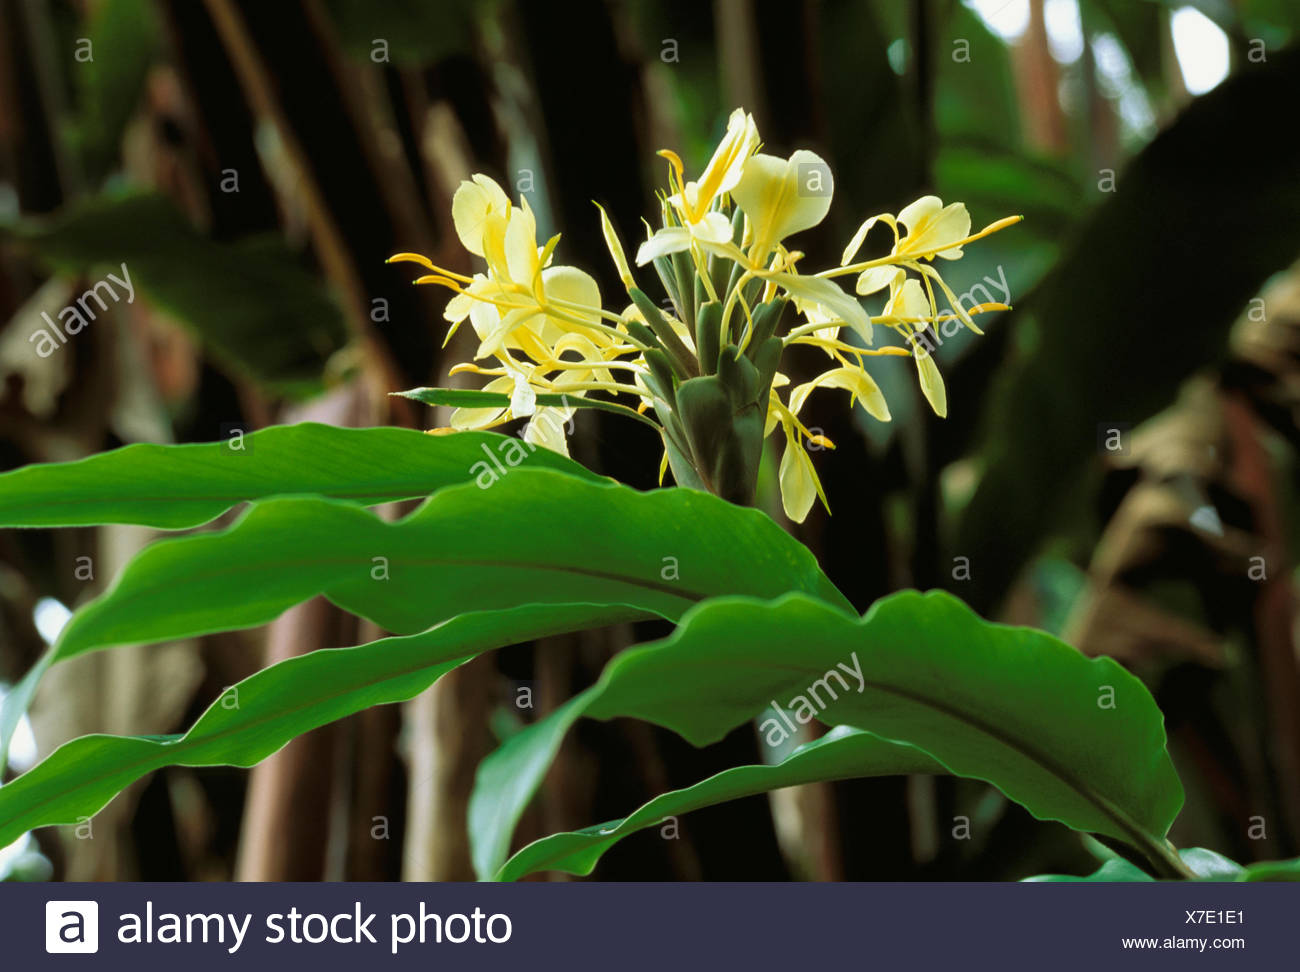 Close Up Sprig Of White Ginger Flowers On Plant Stock Photo